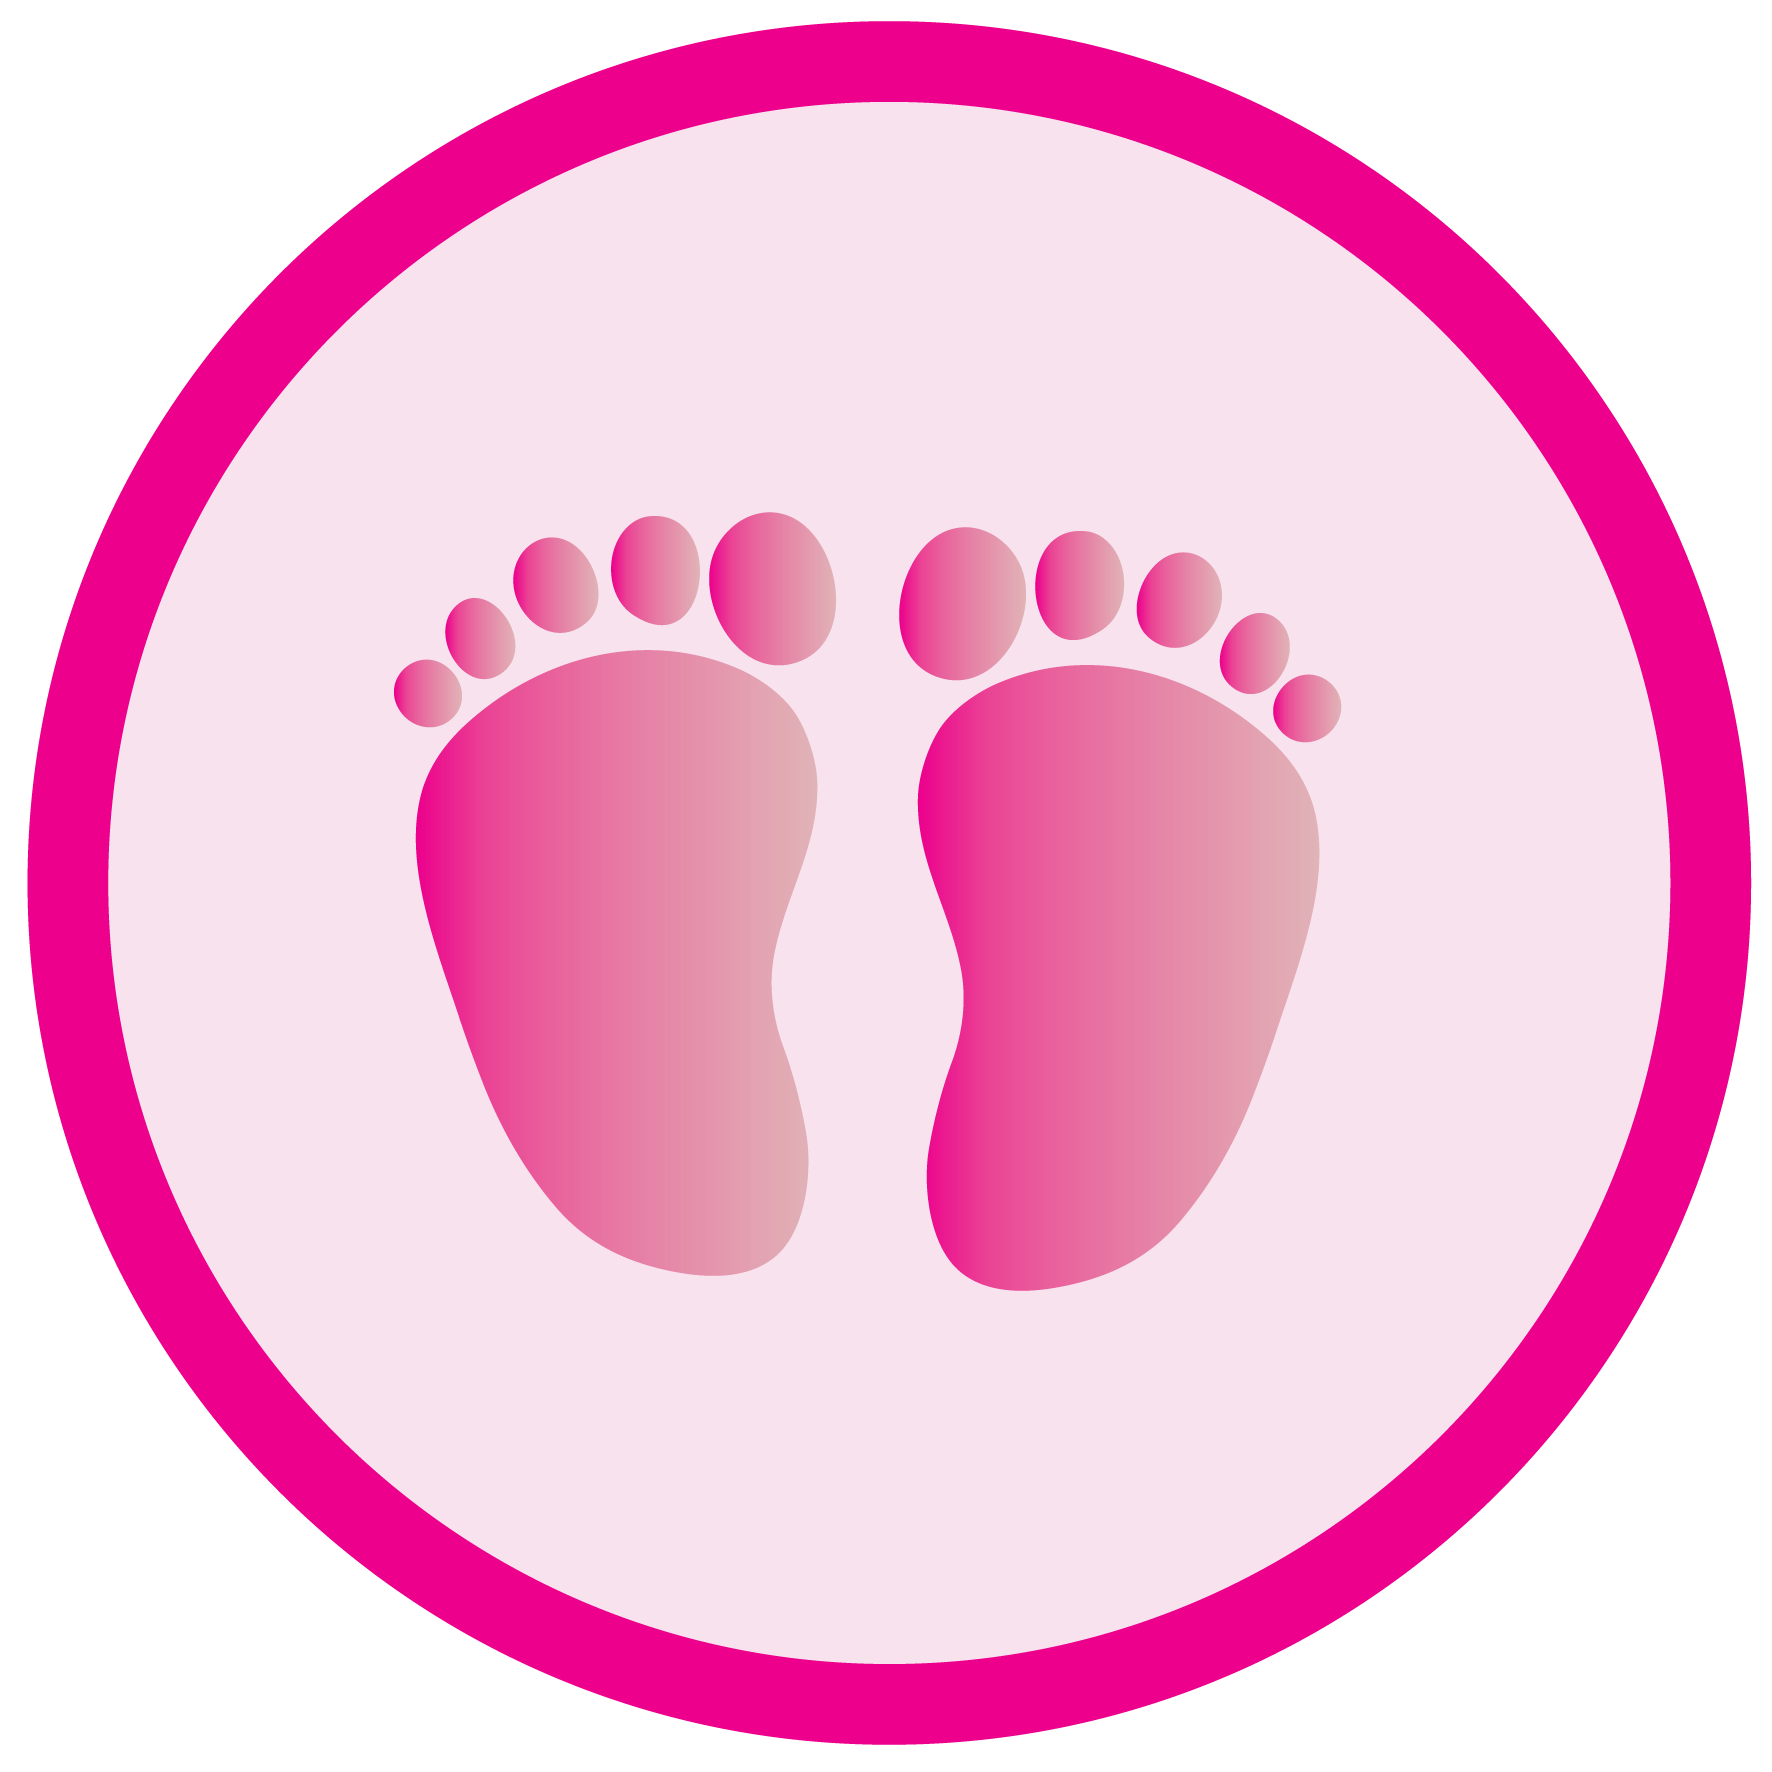 Baby Girl Footprint Clipart | Free download on ClipArtMag